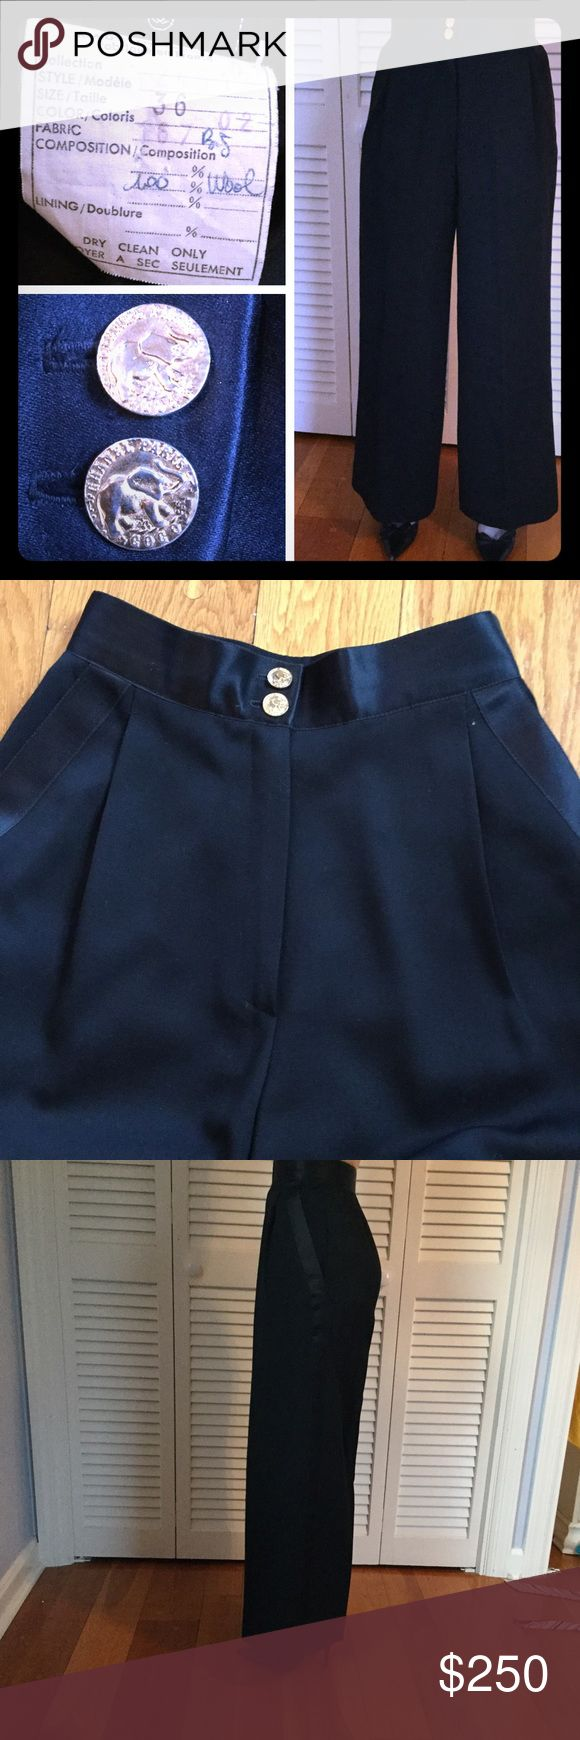 CHANEL tuxedo pants sz 36/2 gold buttons CHANEL tuxedo pants with satin stripe. Amazing gold buttons! Tagged 36, US equivalent 2. CHANEL Pants Trousers